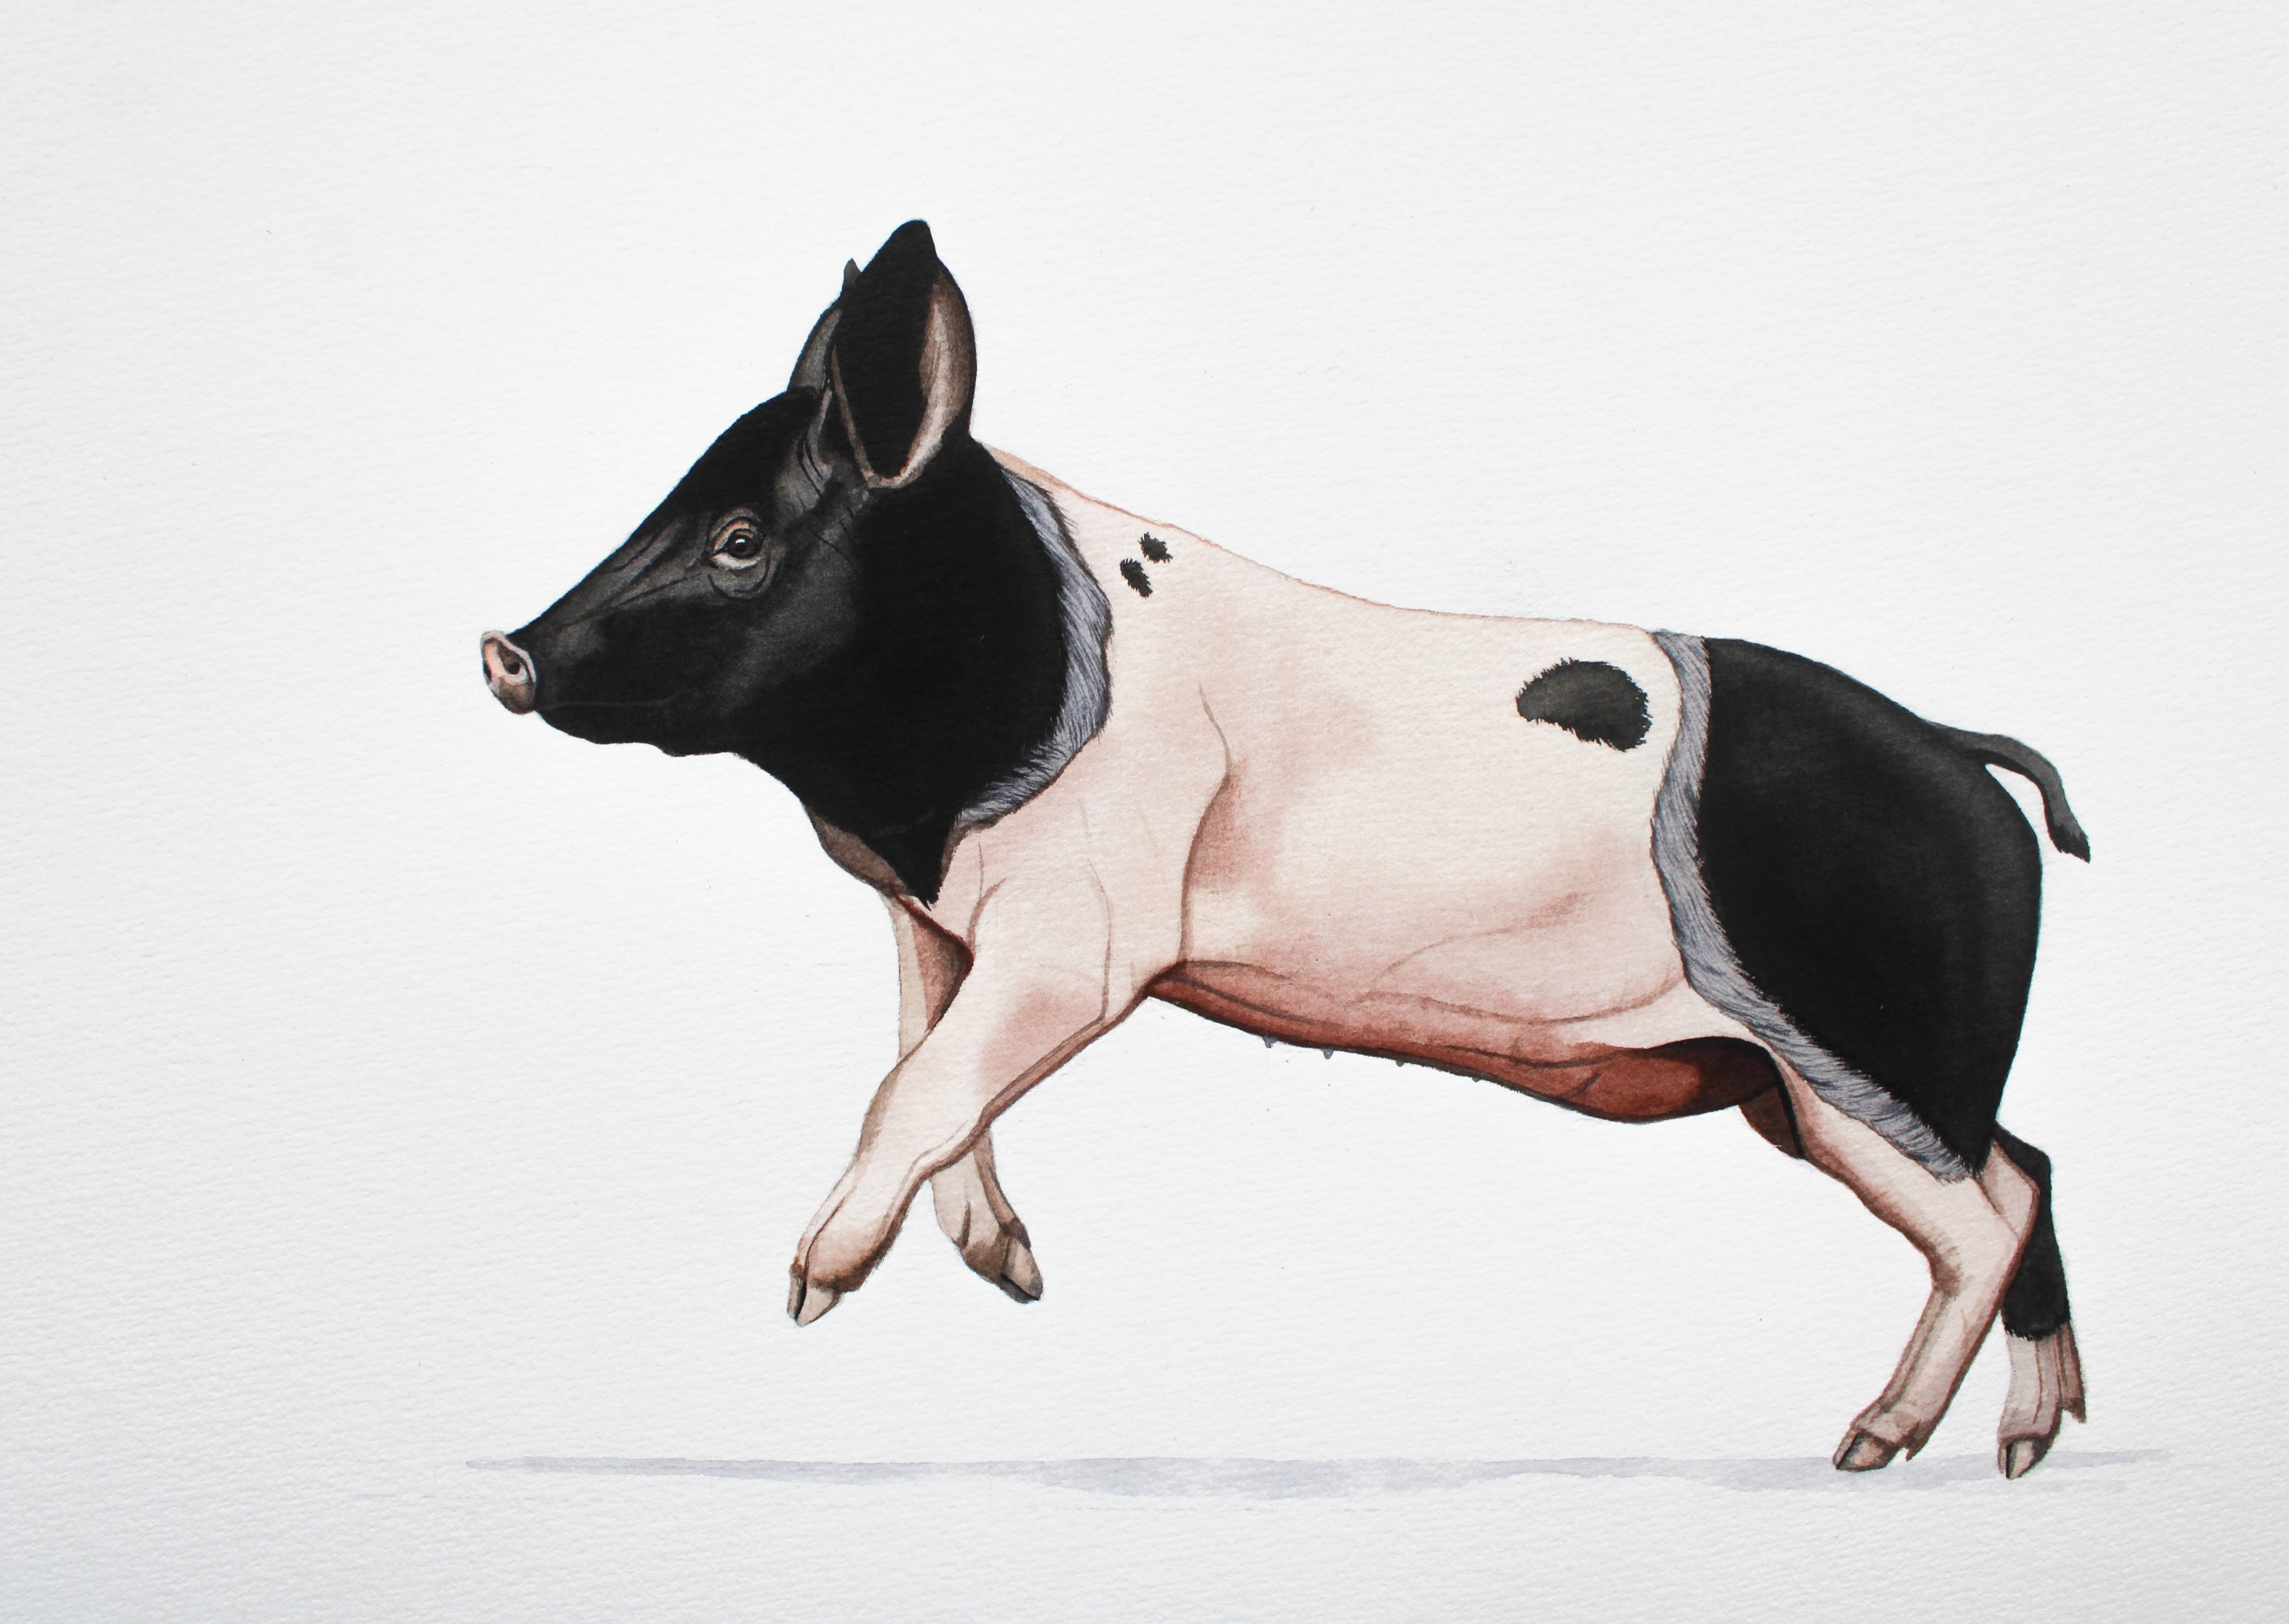 Angeln Saddleback Pig | € 200